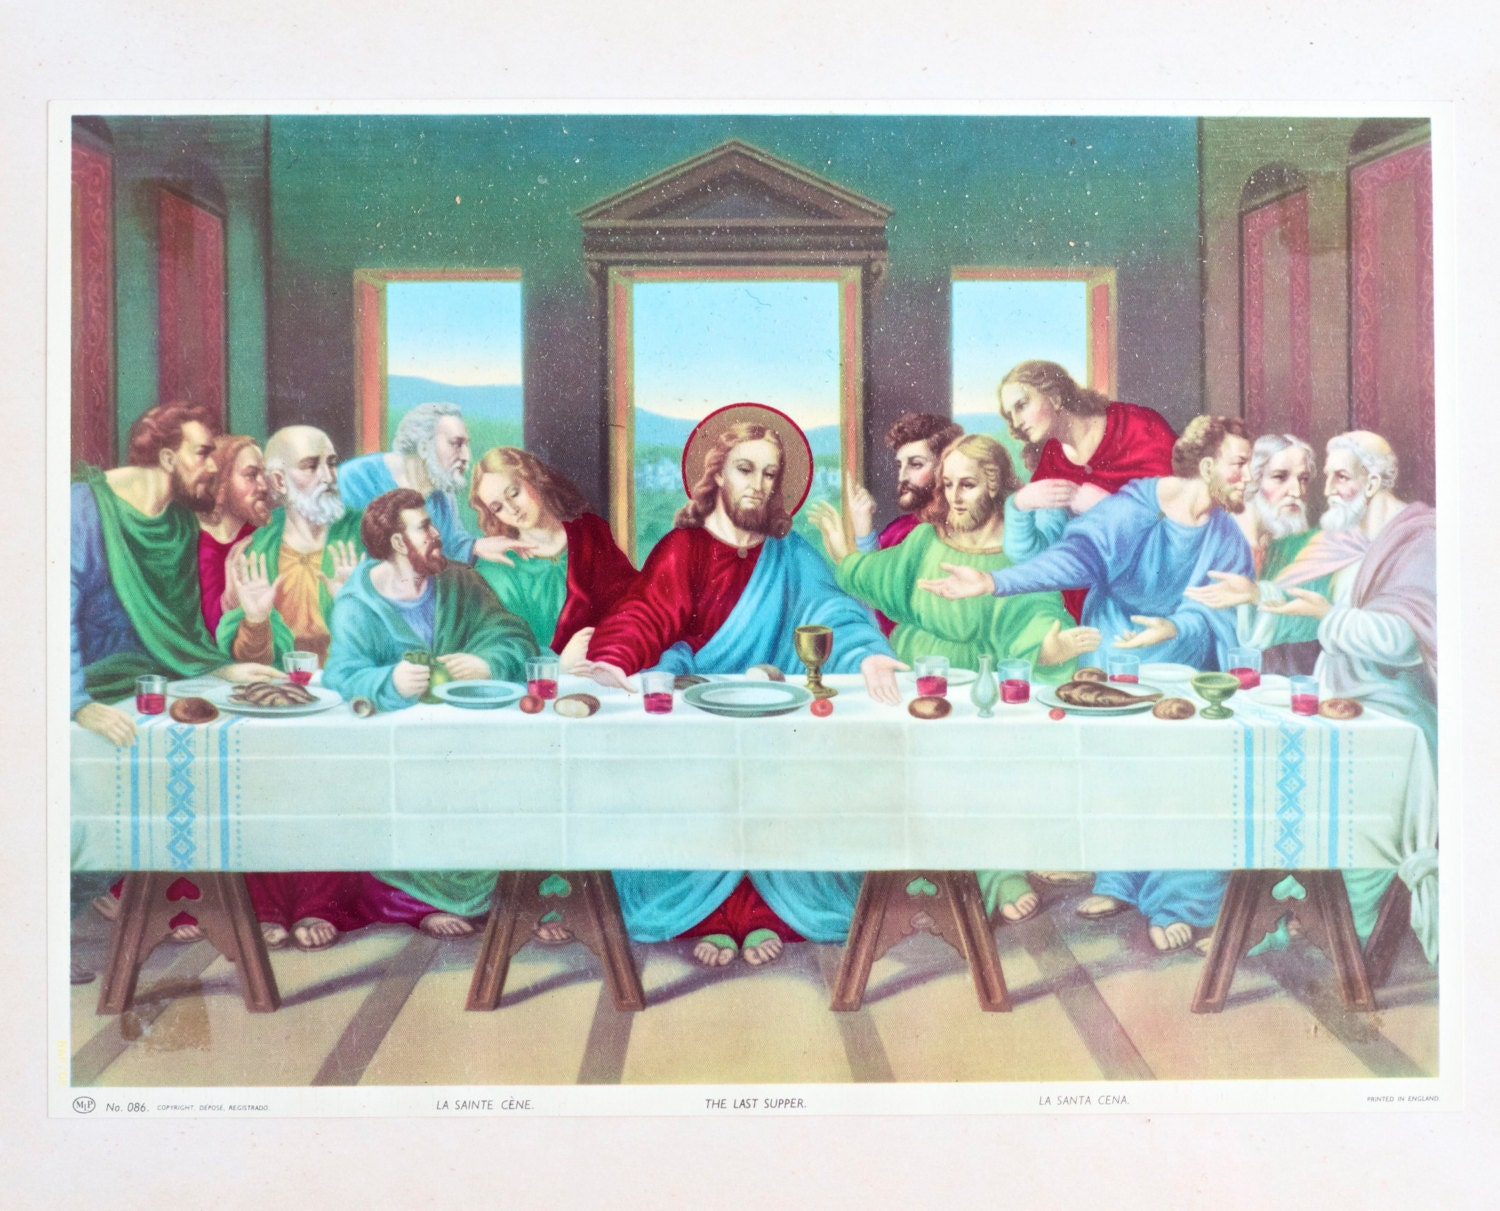 Last Supper Print On Etsy A Global Handmade And Vintage